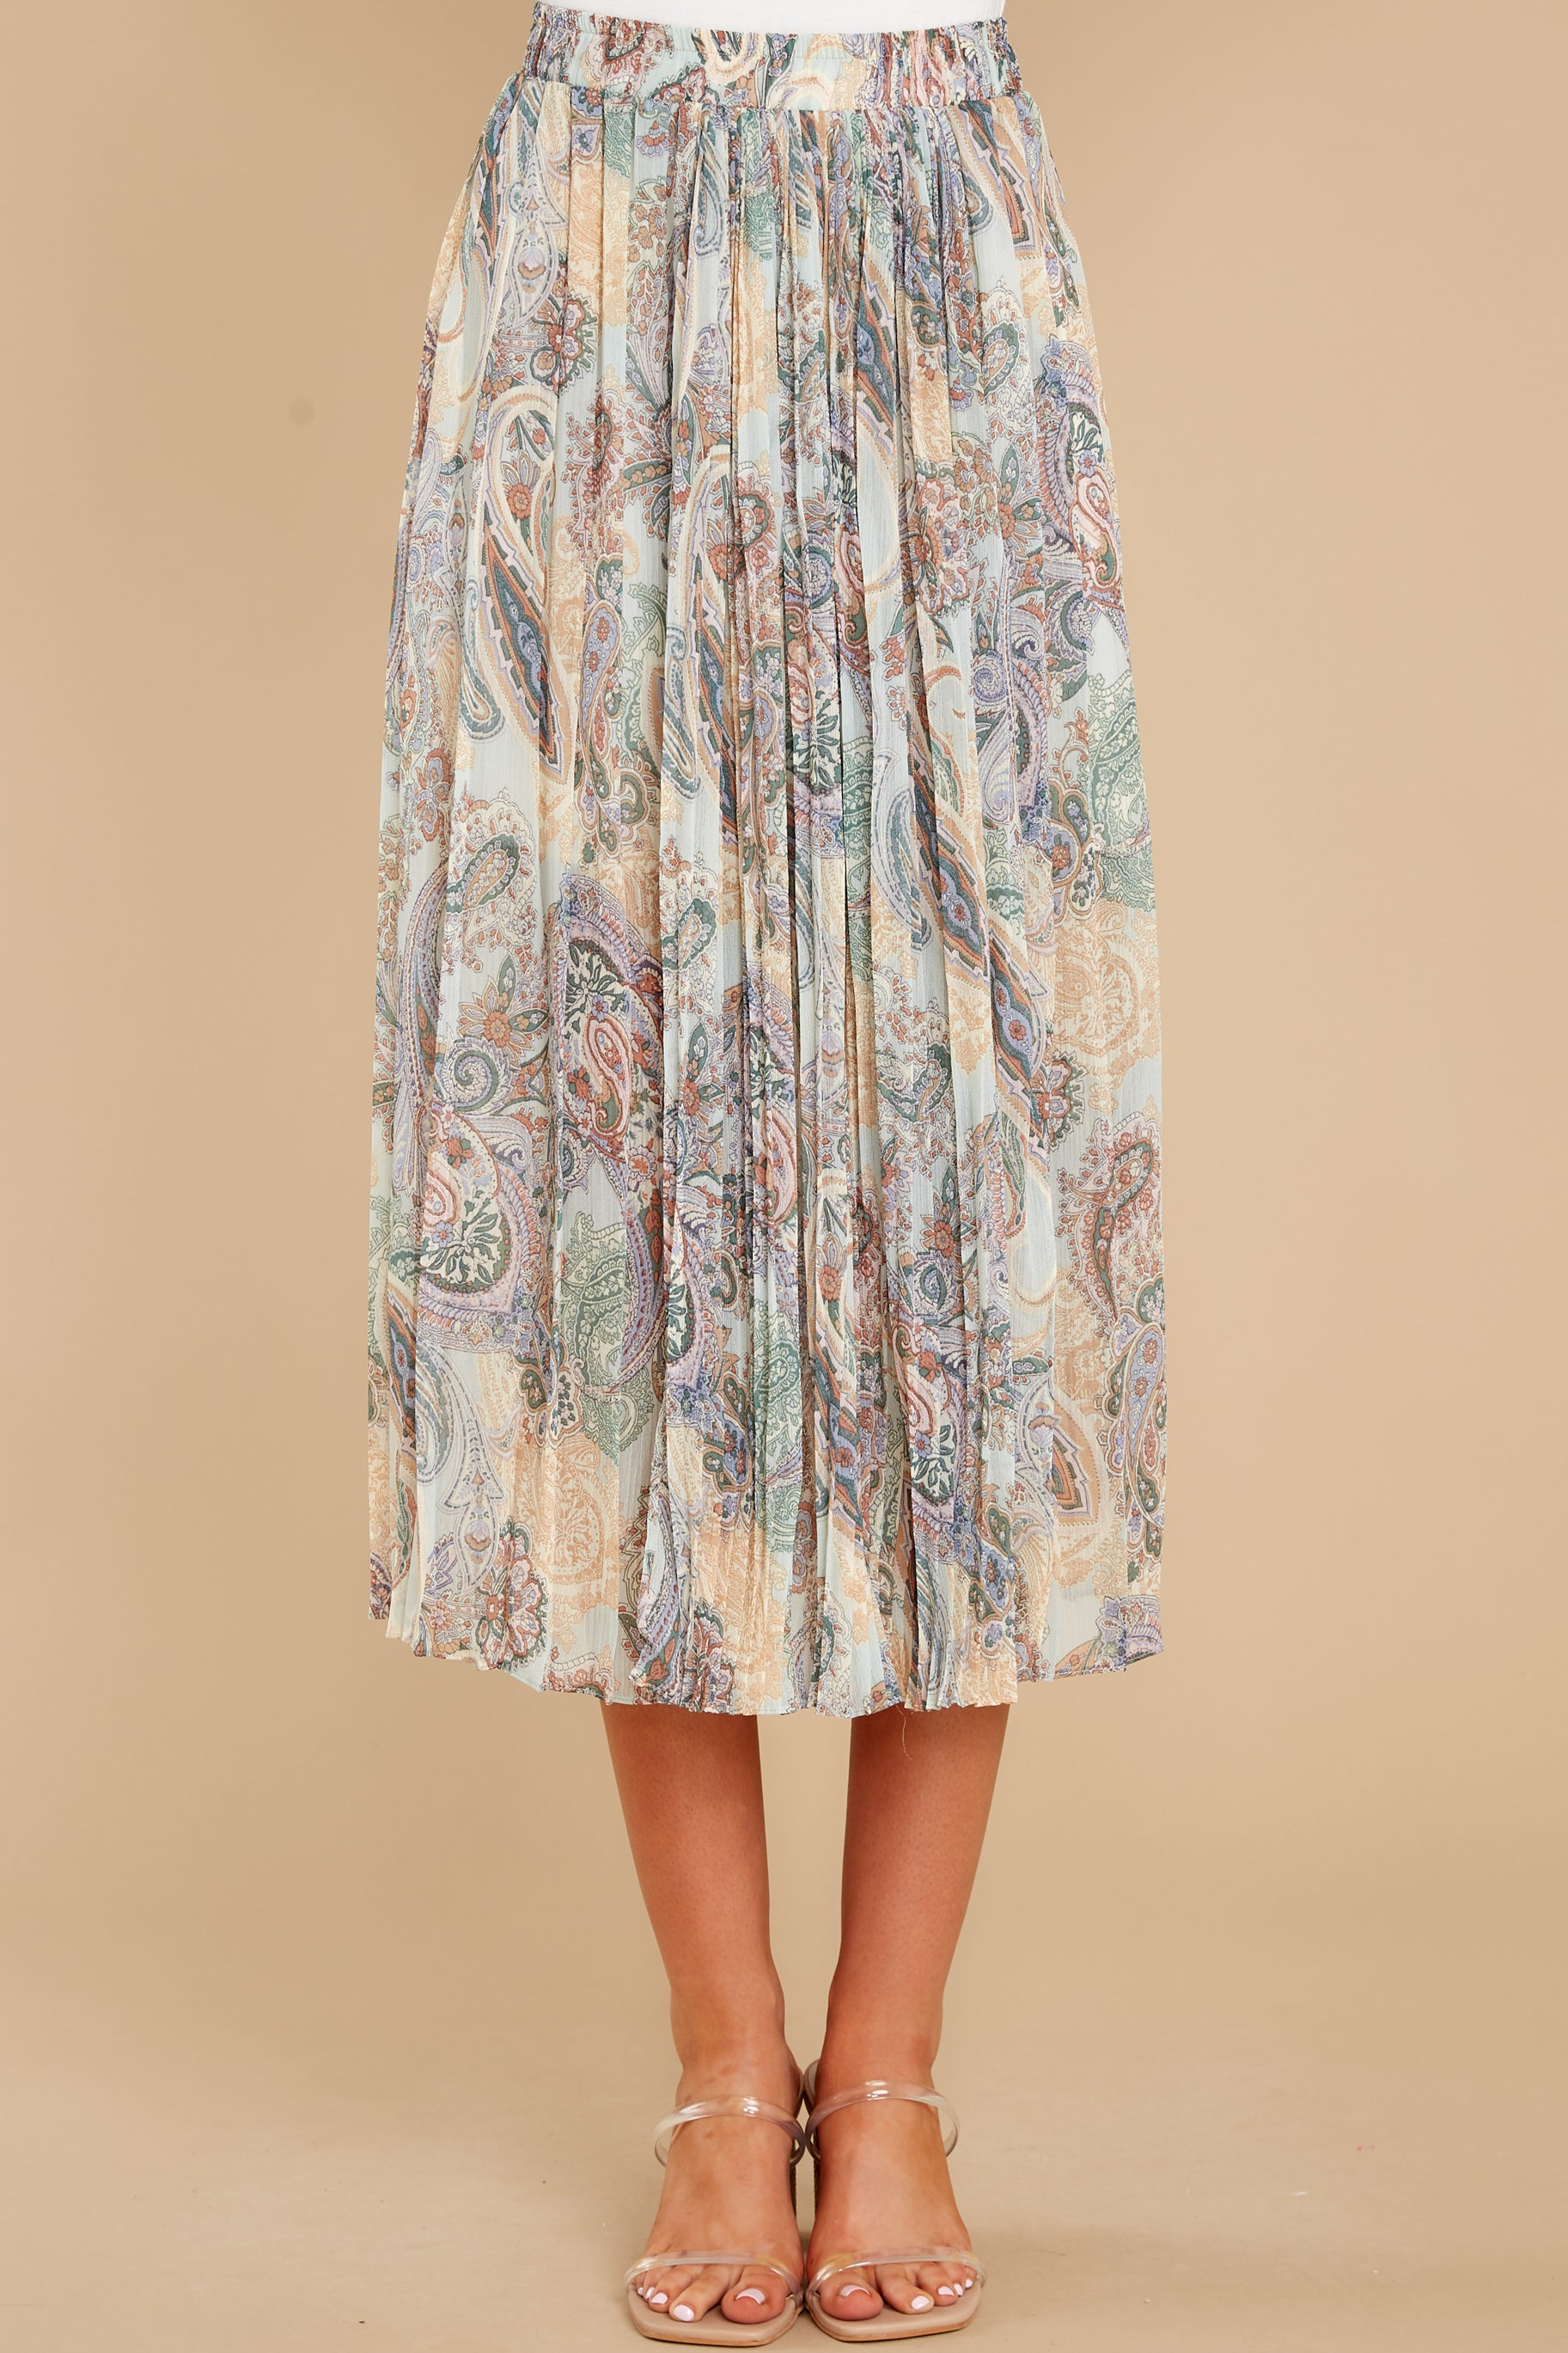 2 In Another Life Mint Paisley Print Midi Skirt at reddress.com